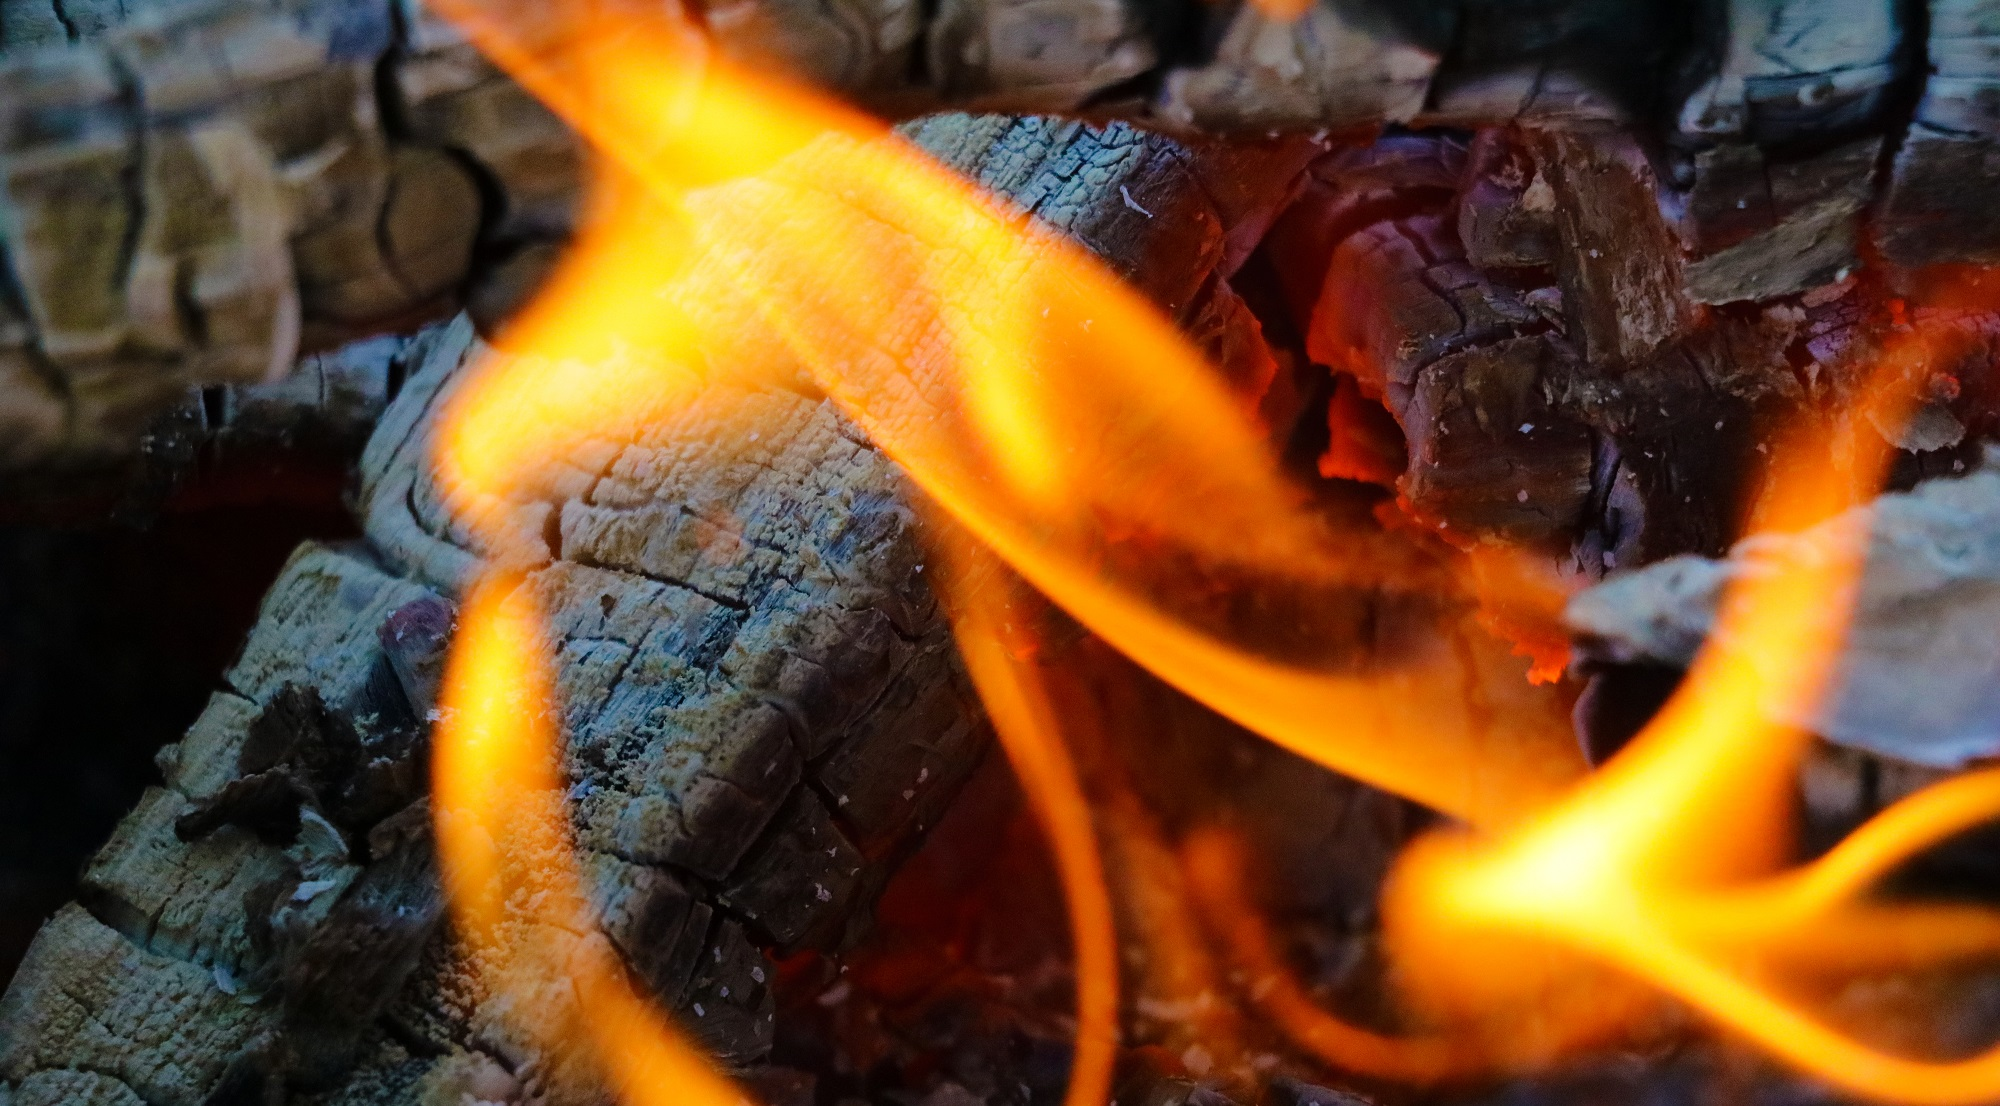 How to prevent workplace fires involving flammable liquids